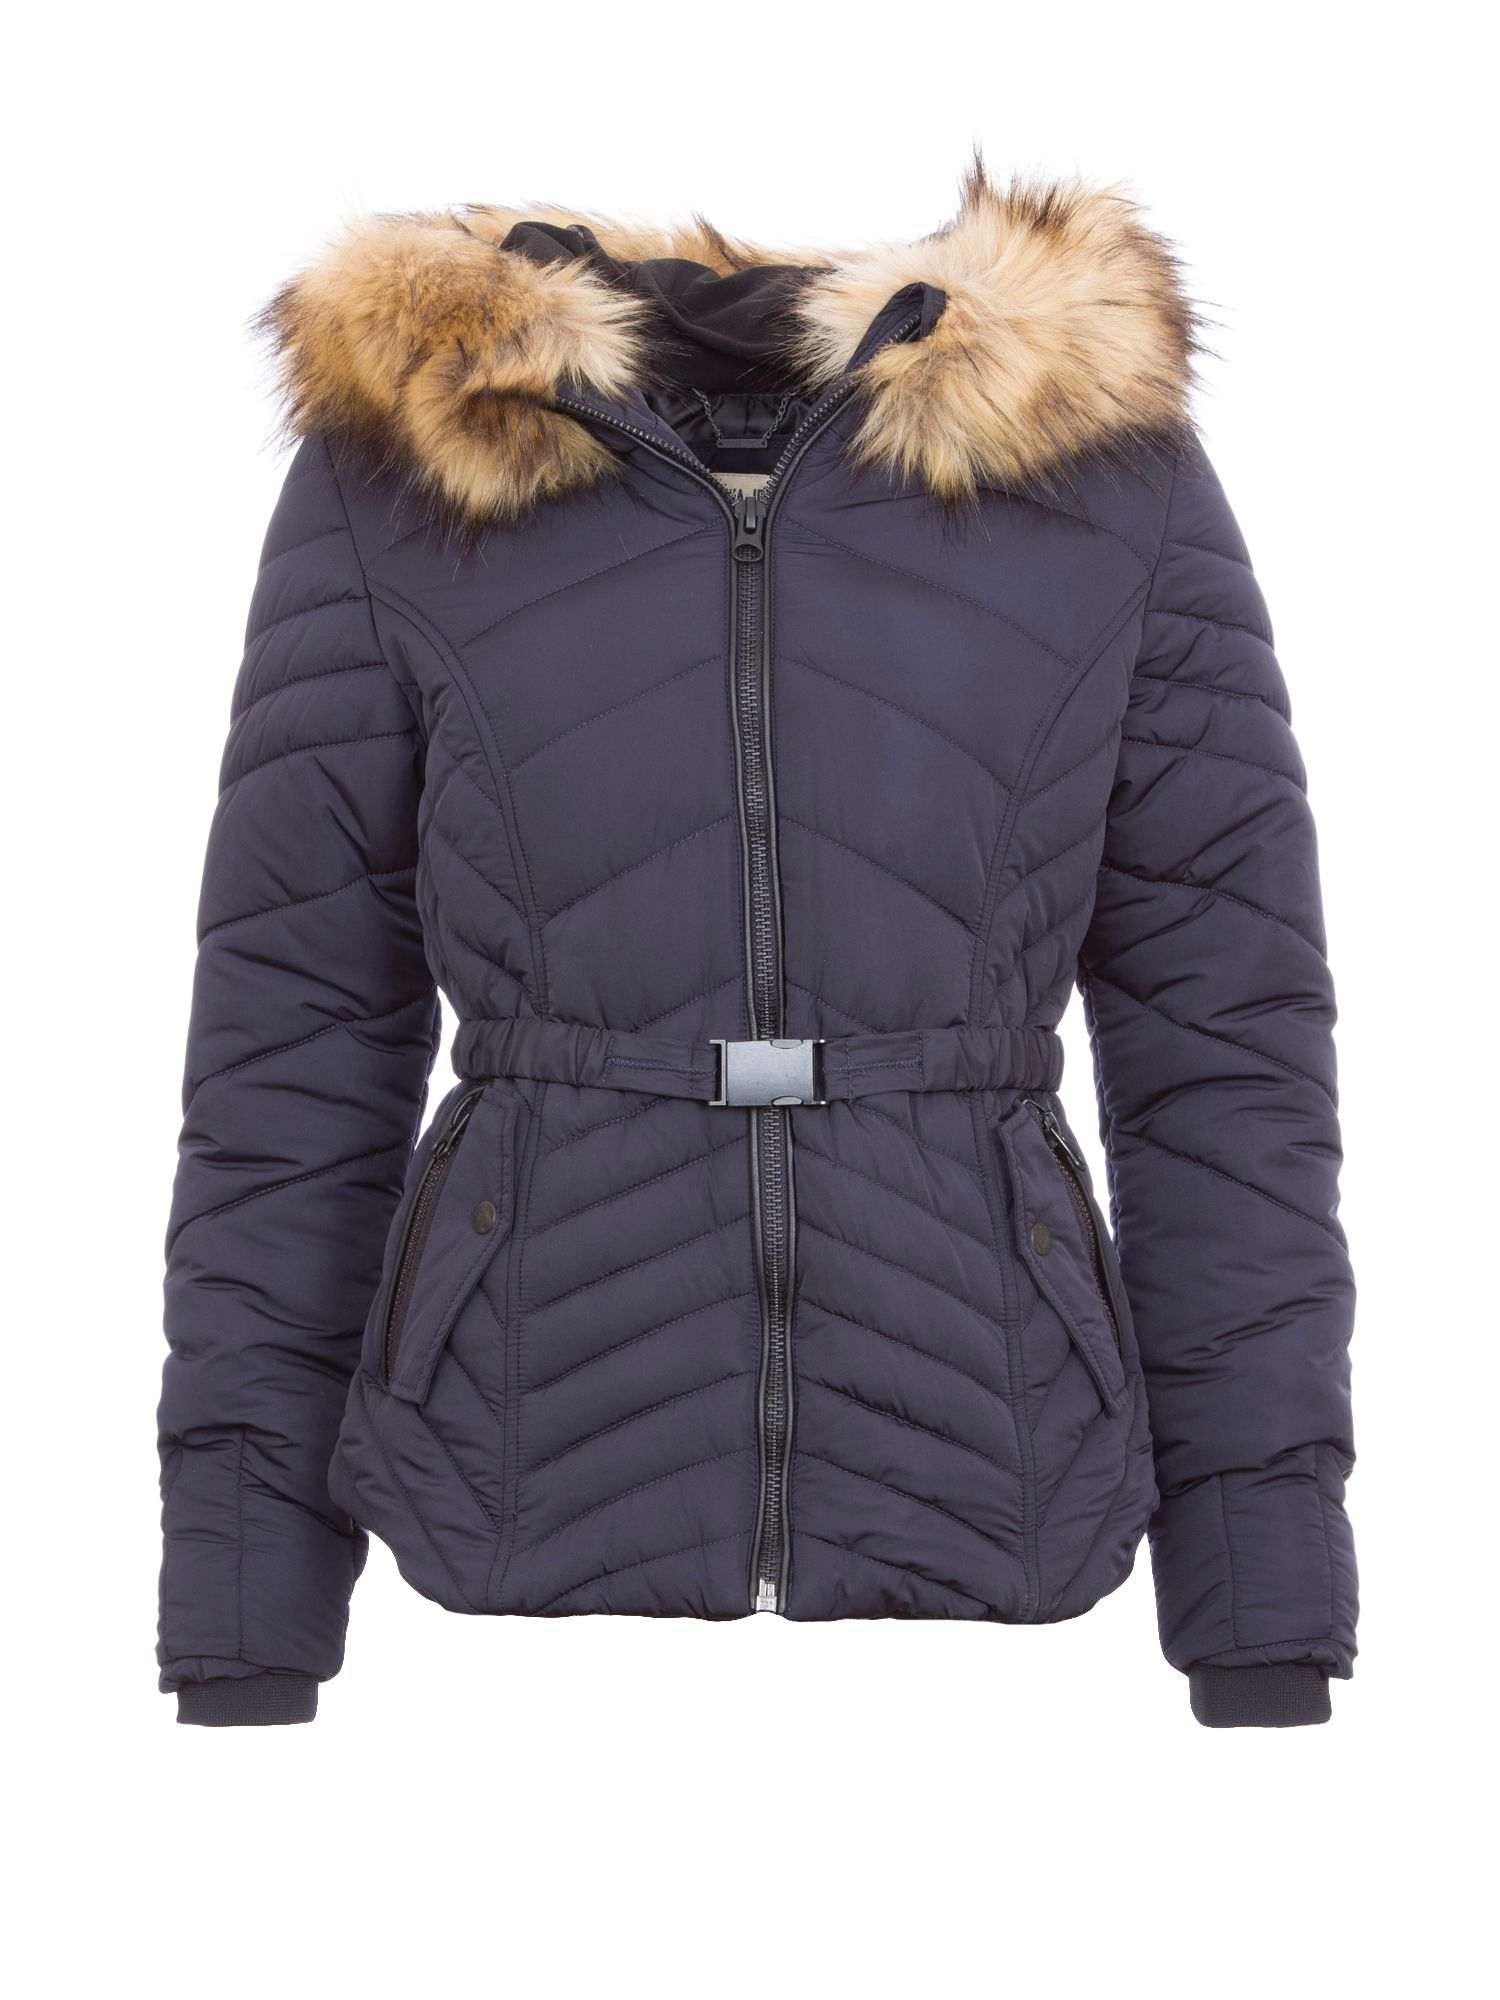 Garcia Garcia Quilted Jacket With Hood, Navy